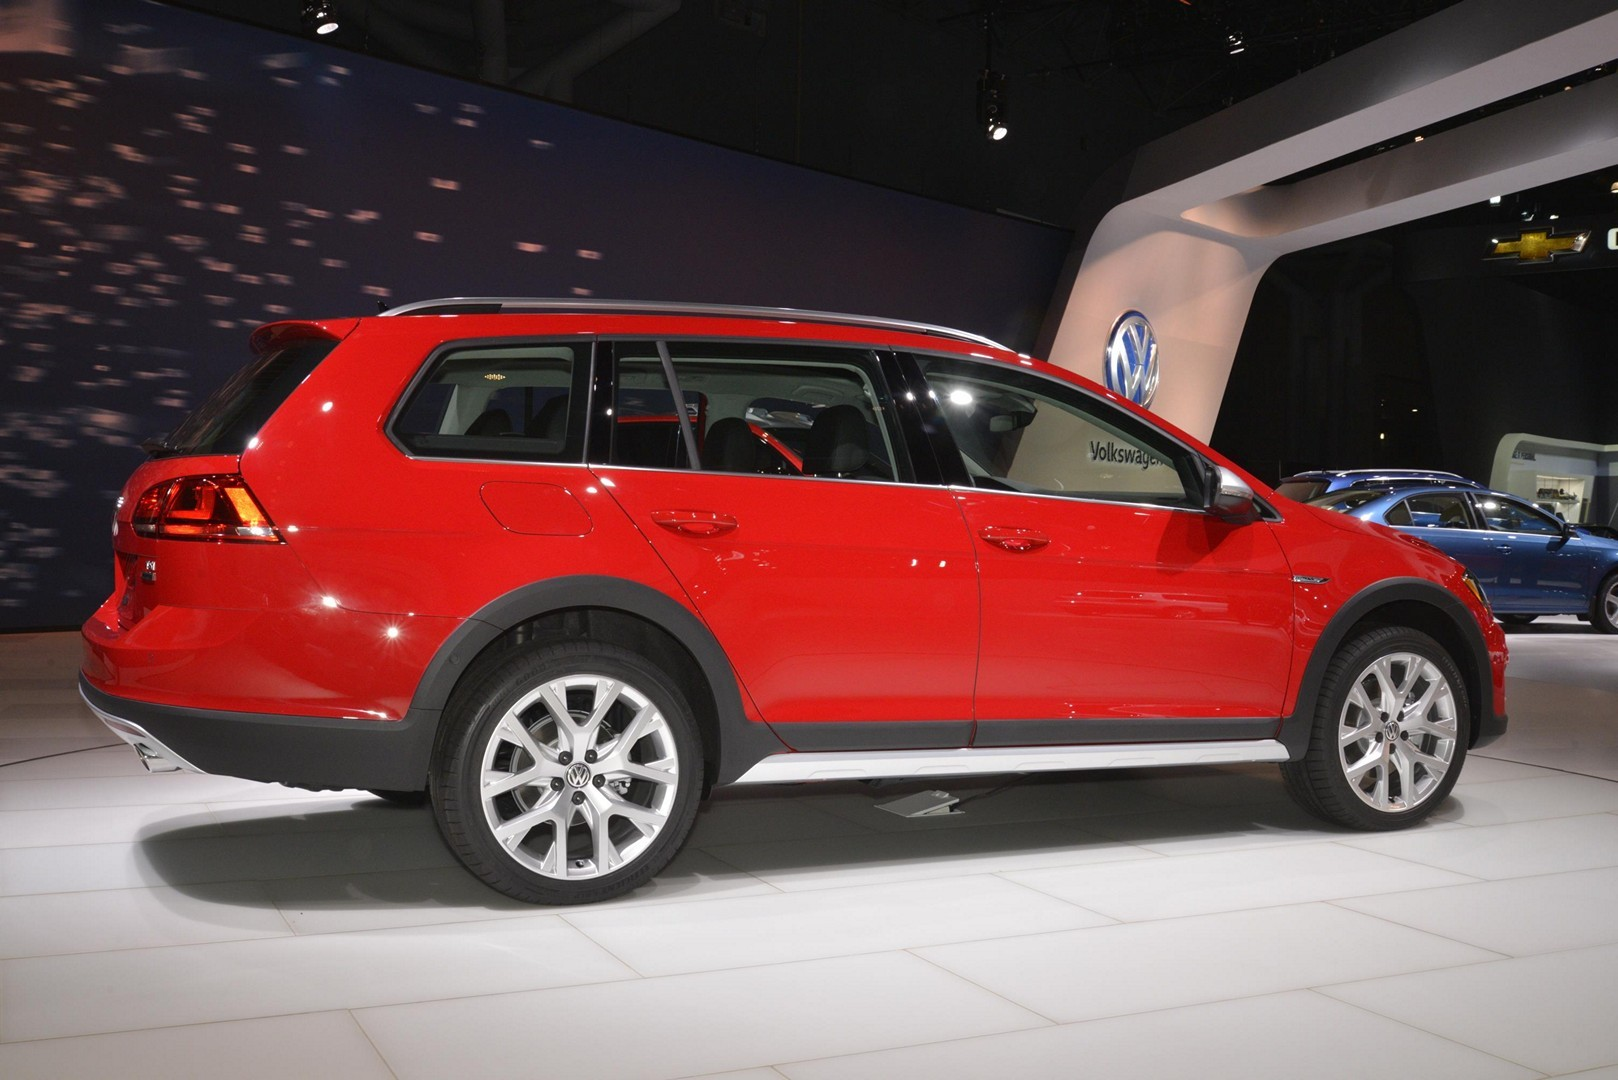 2017 vw golf alltrack has dual exhaust and red paint like. Black Bedroom Furniture Sets. Home Design Ideas